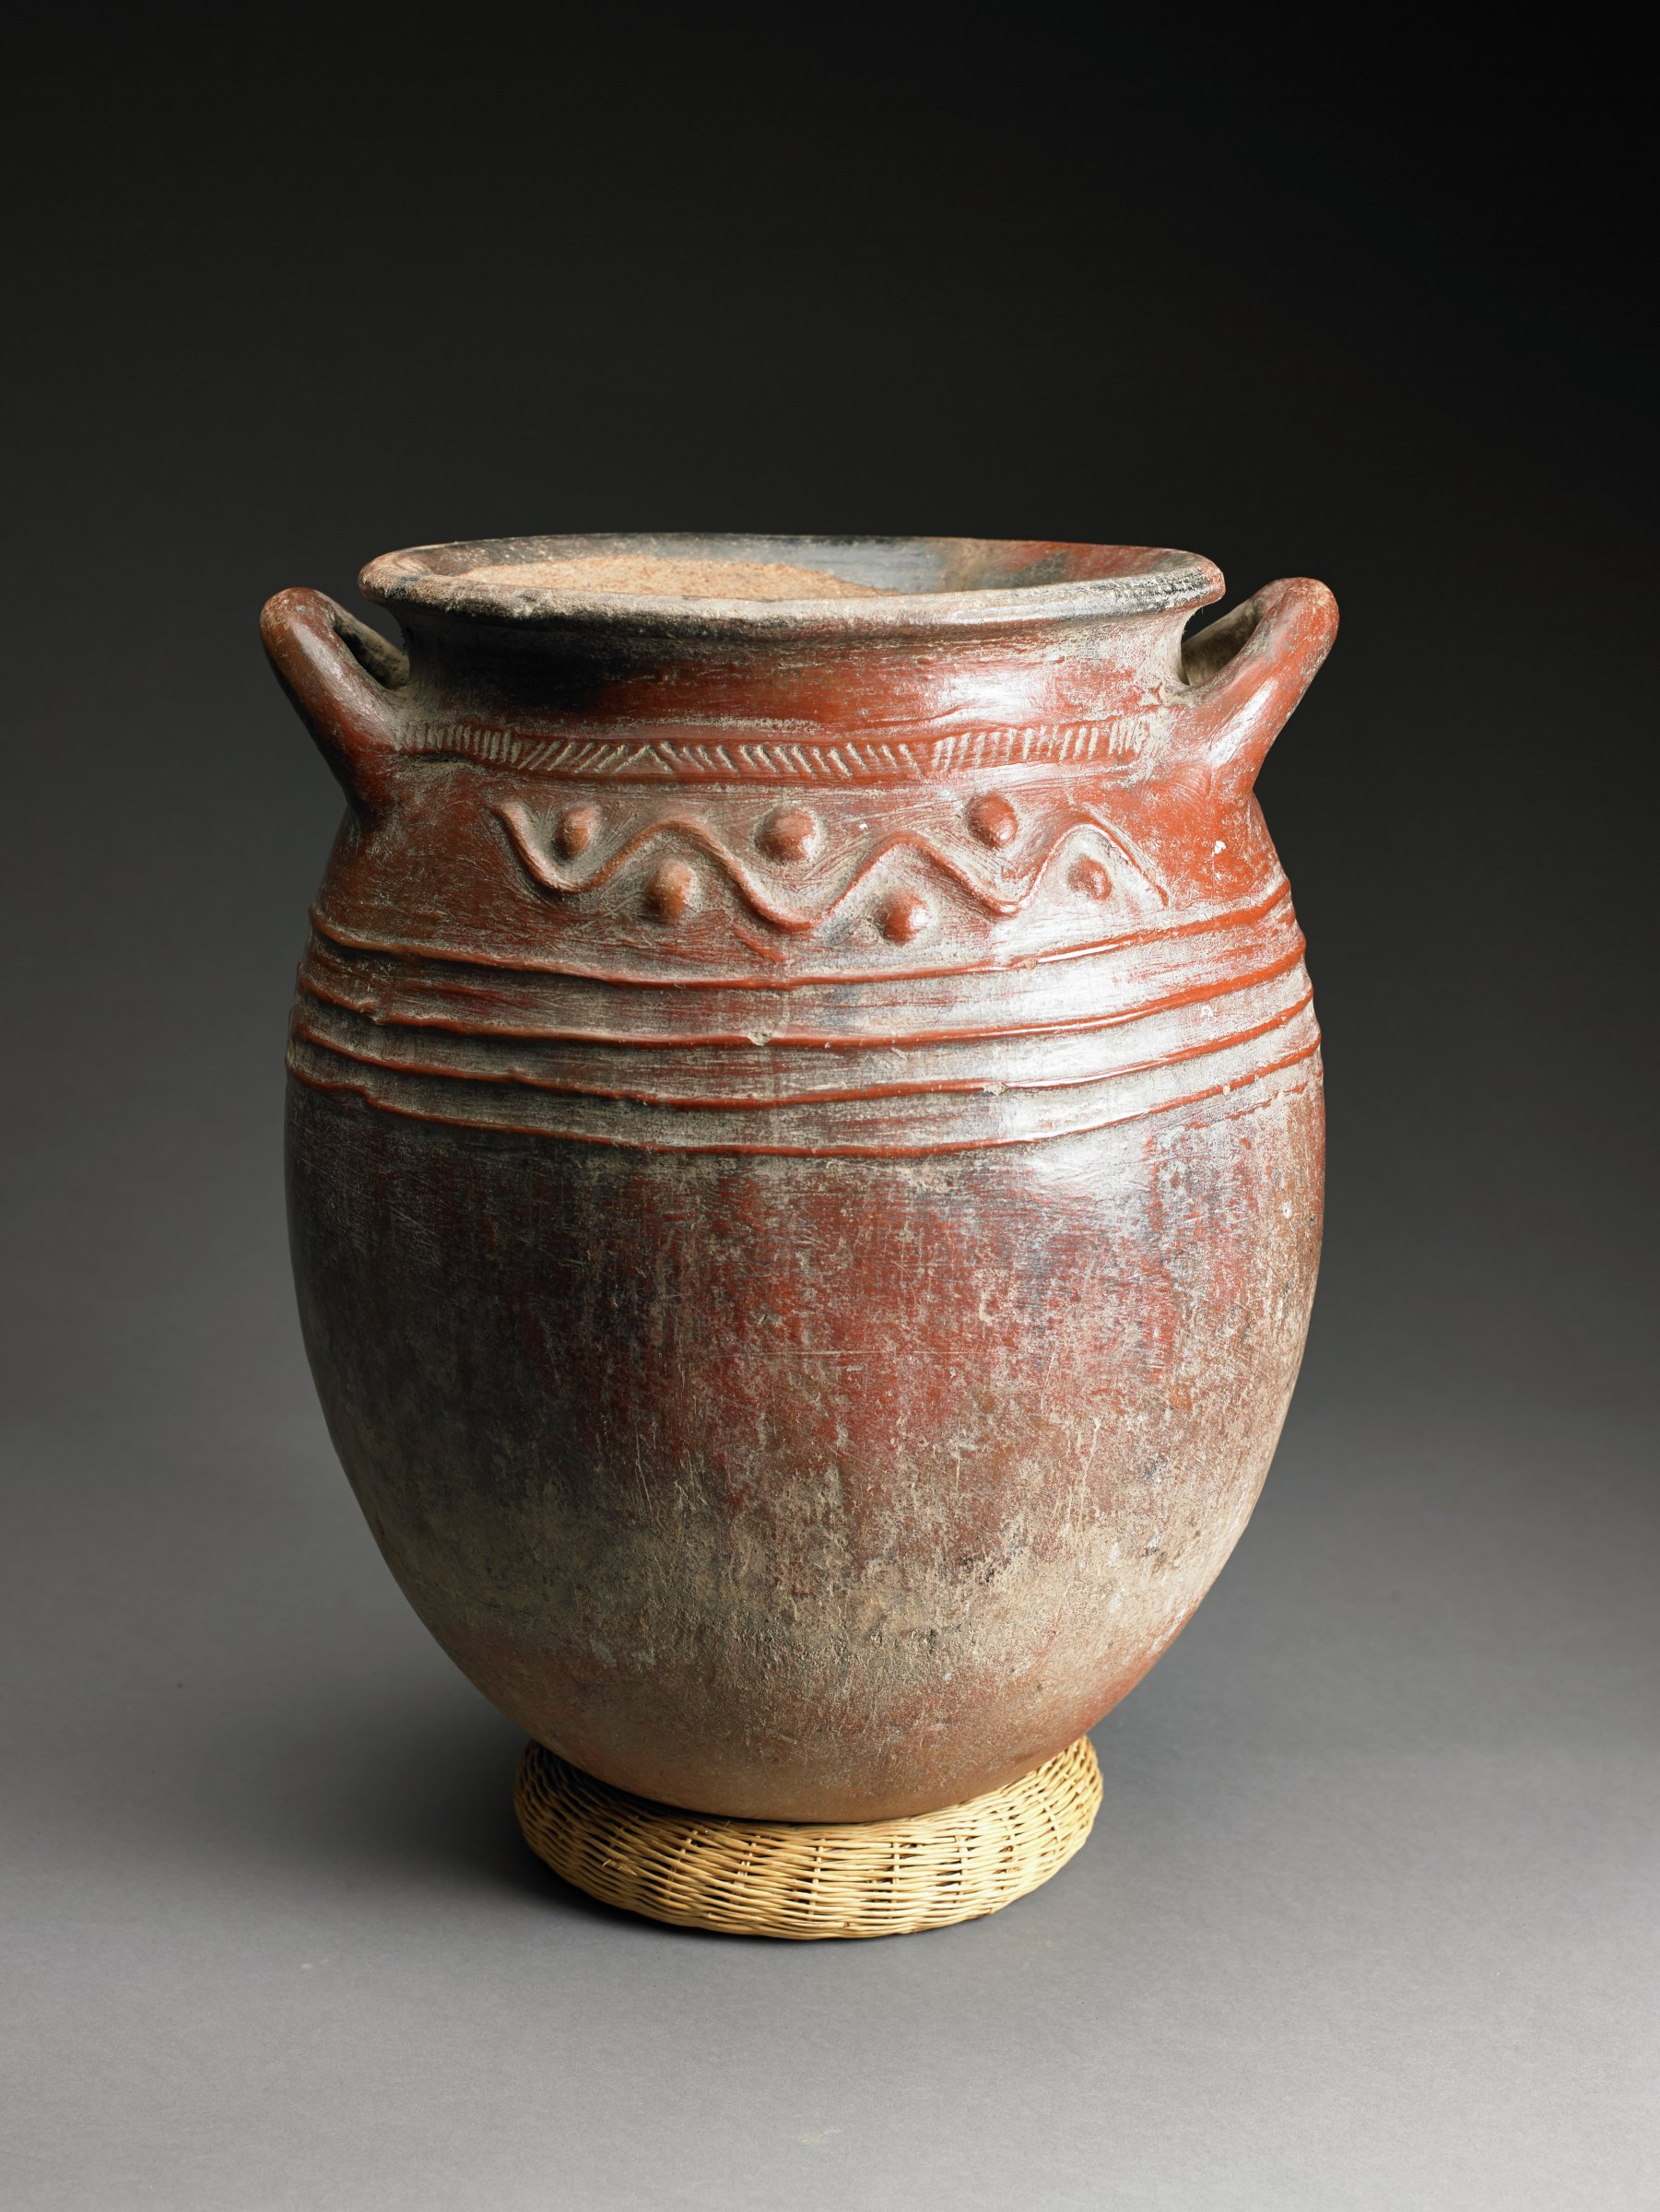 Reddish, ovoid vessel with wide mouth and handles just below rim has parallel raised ridges on shoulder.